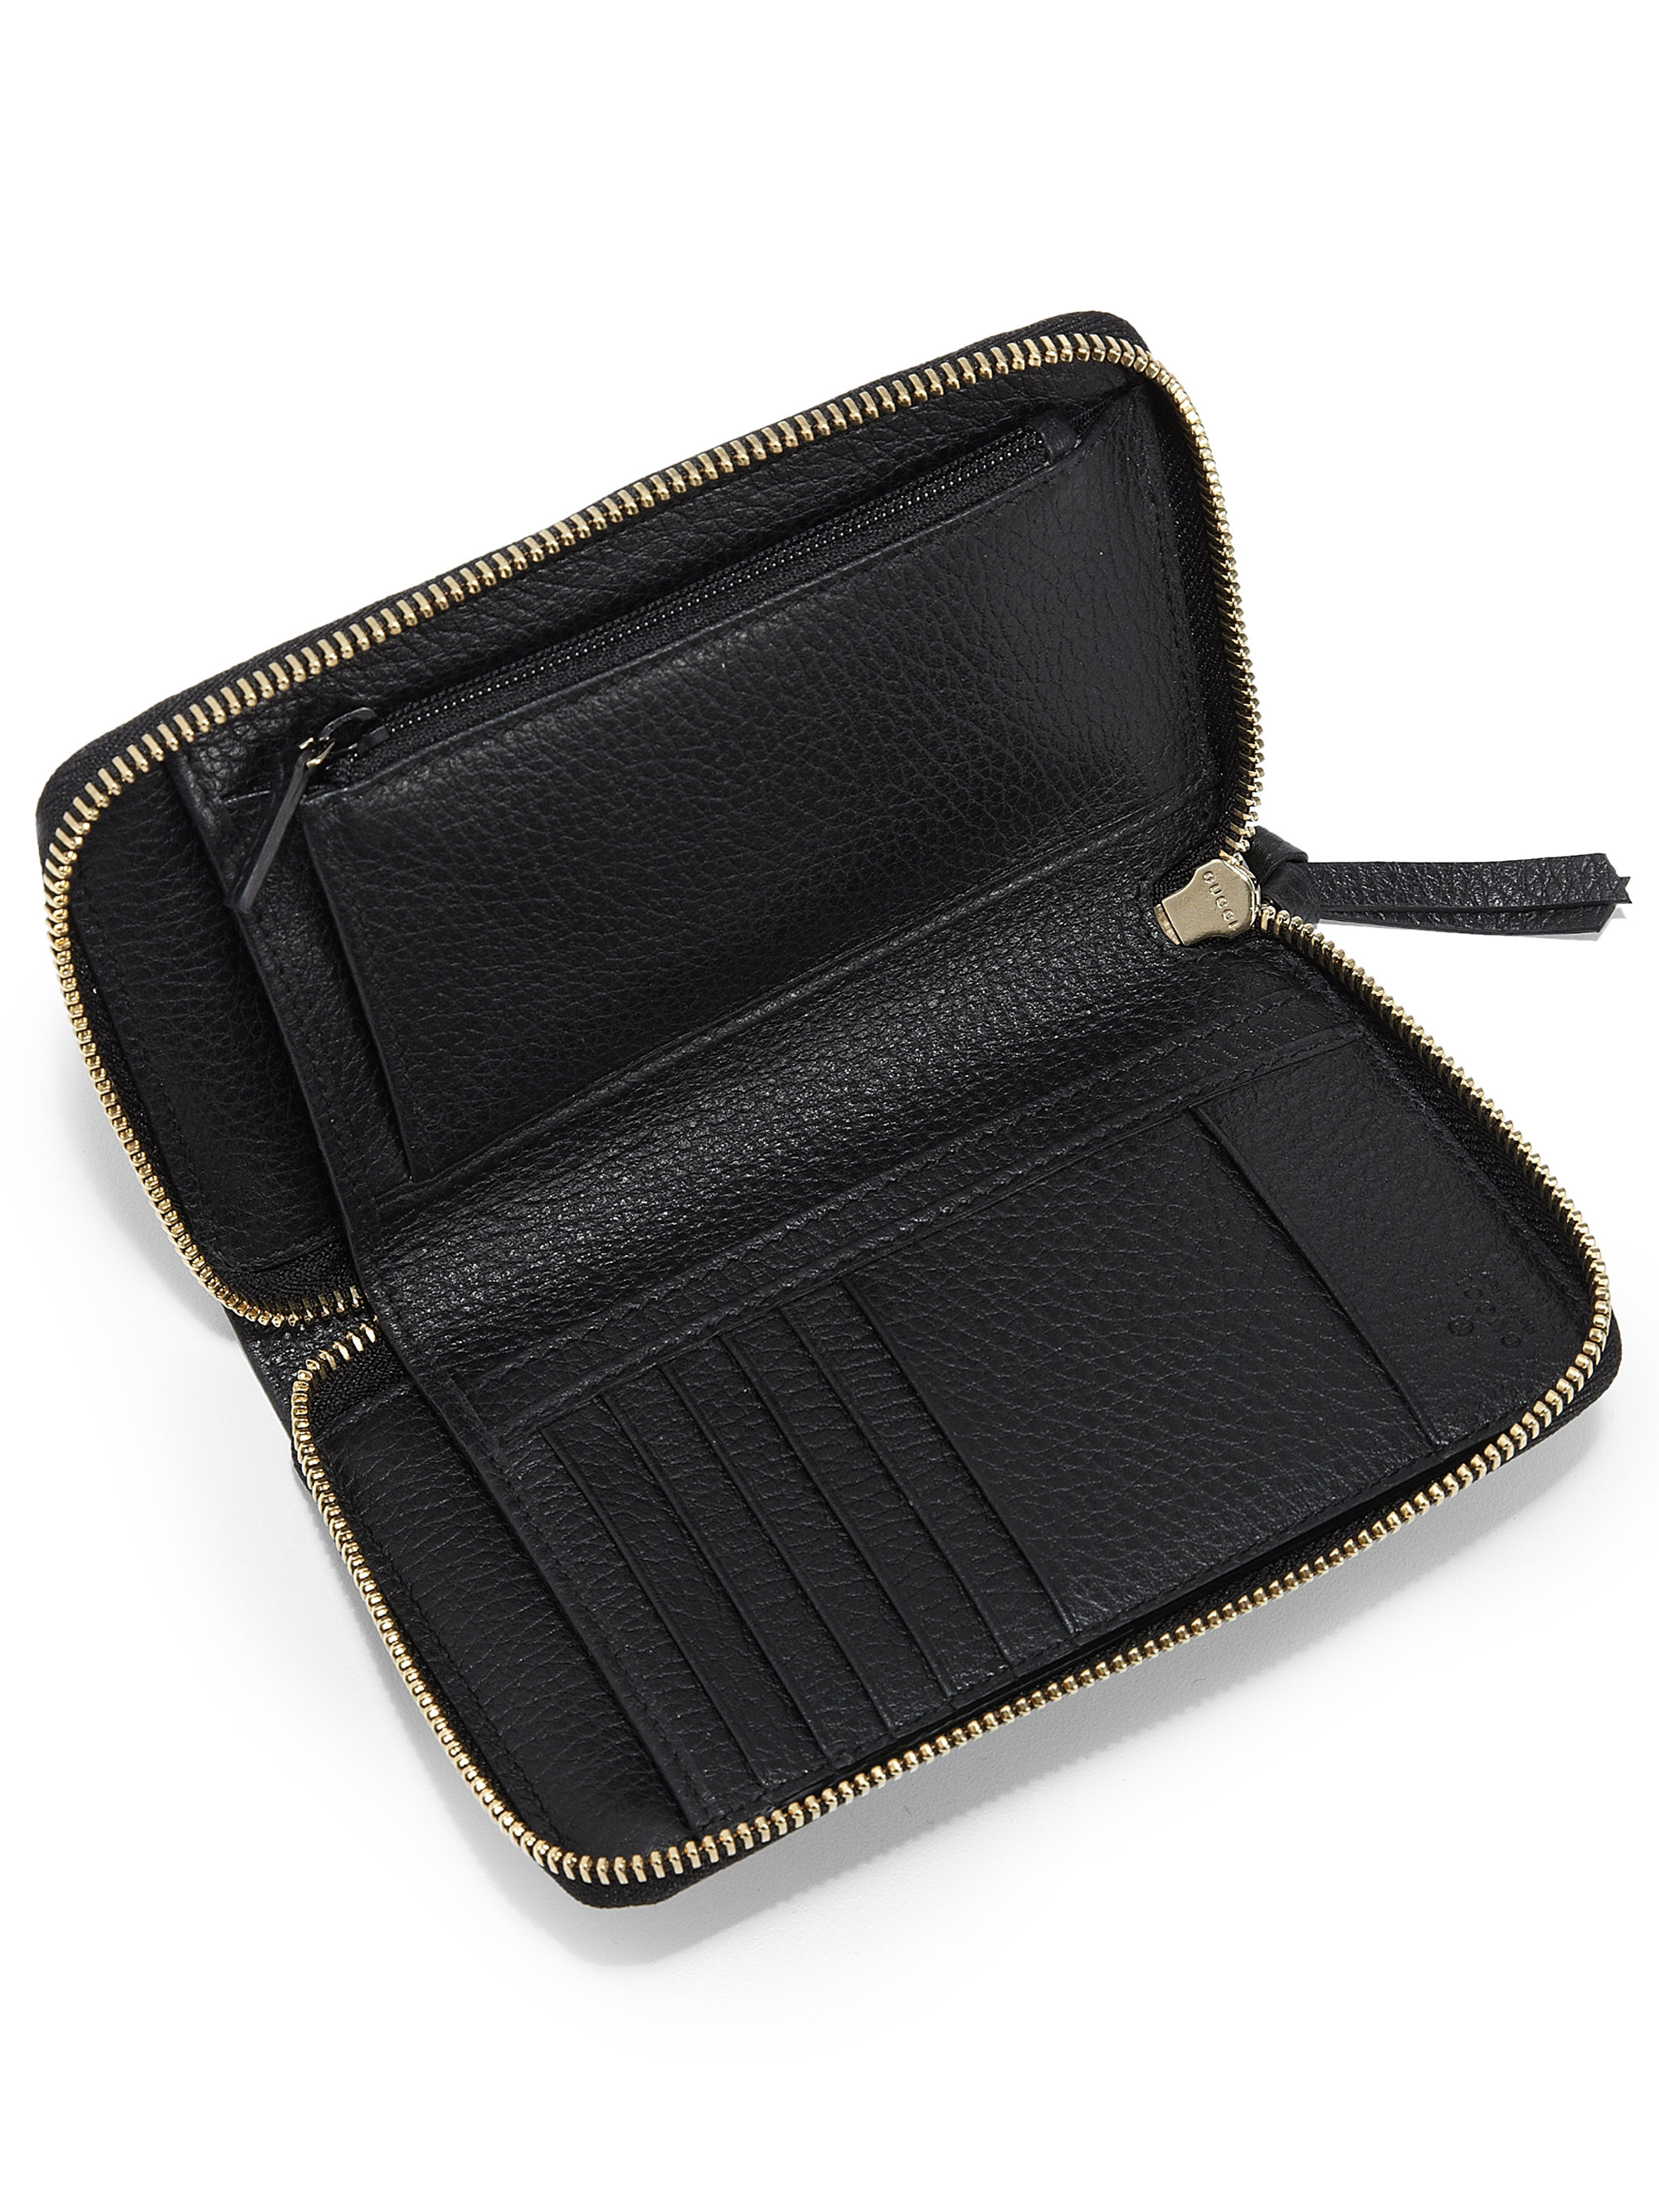 Image Result For Louis Vuitton Wallet Women